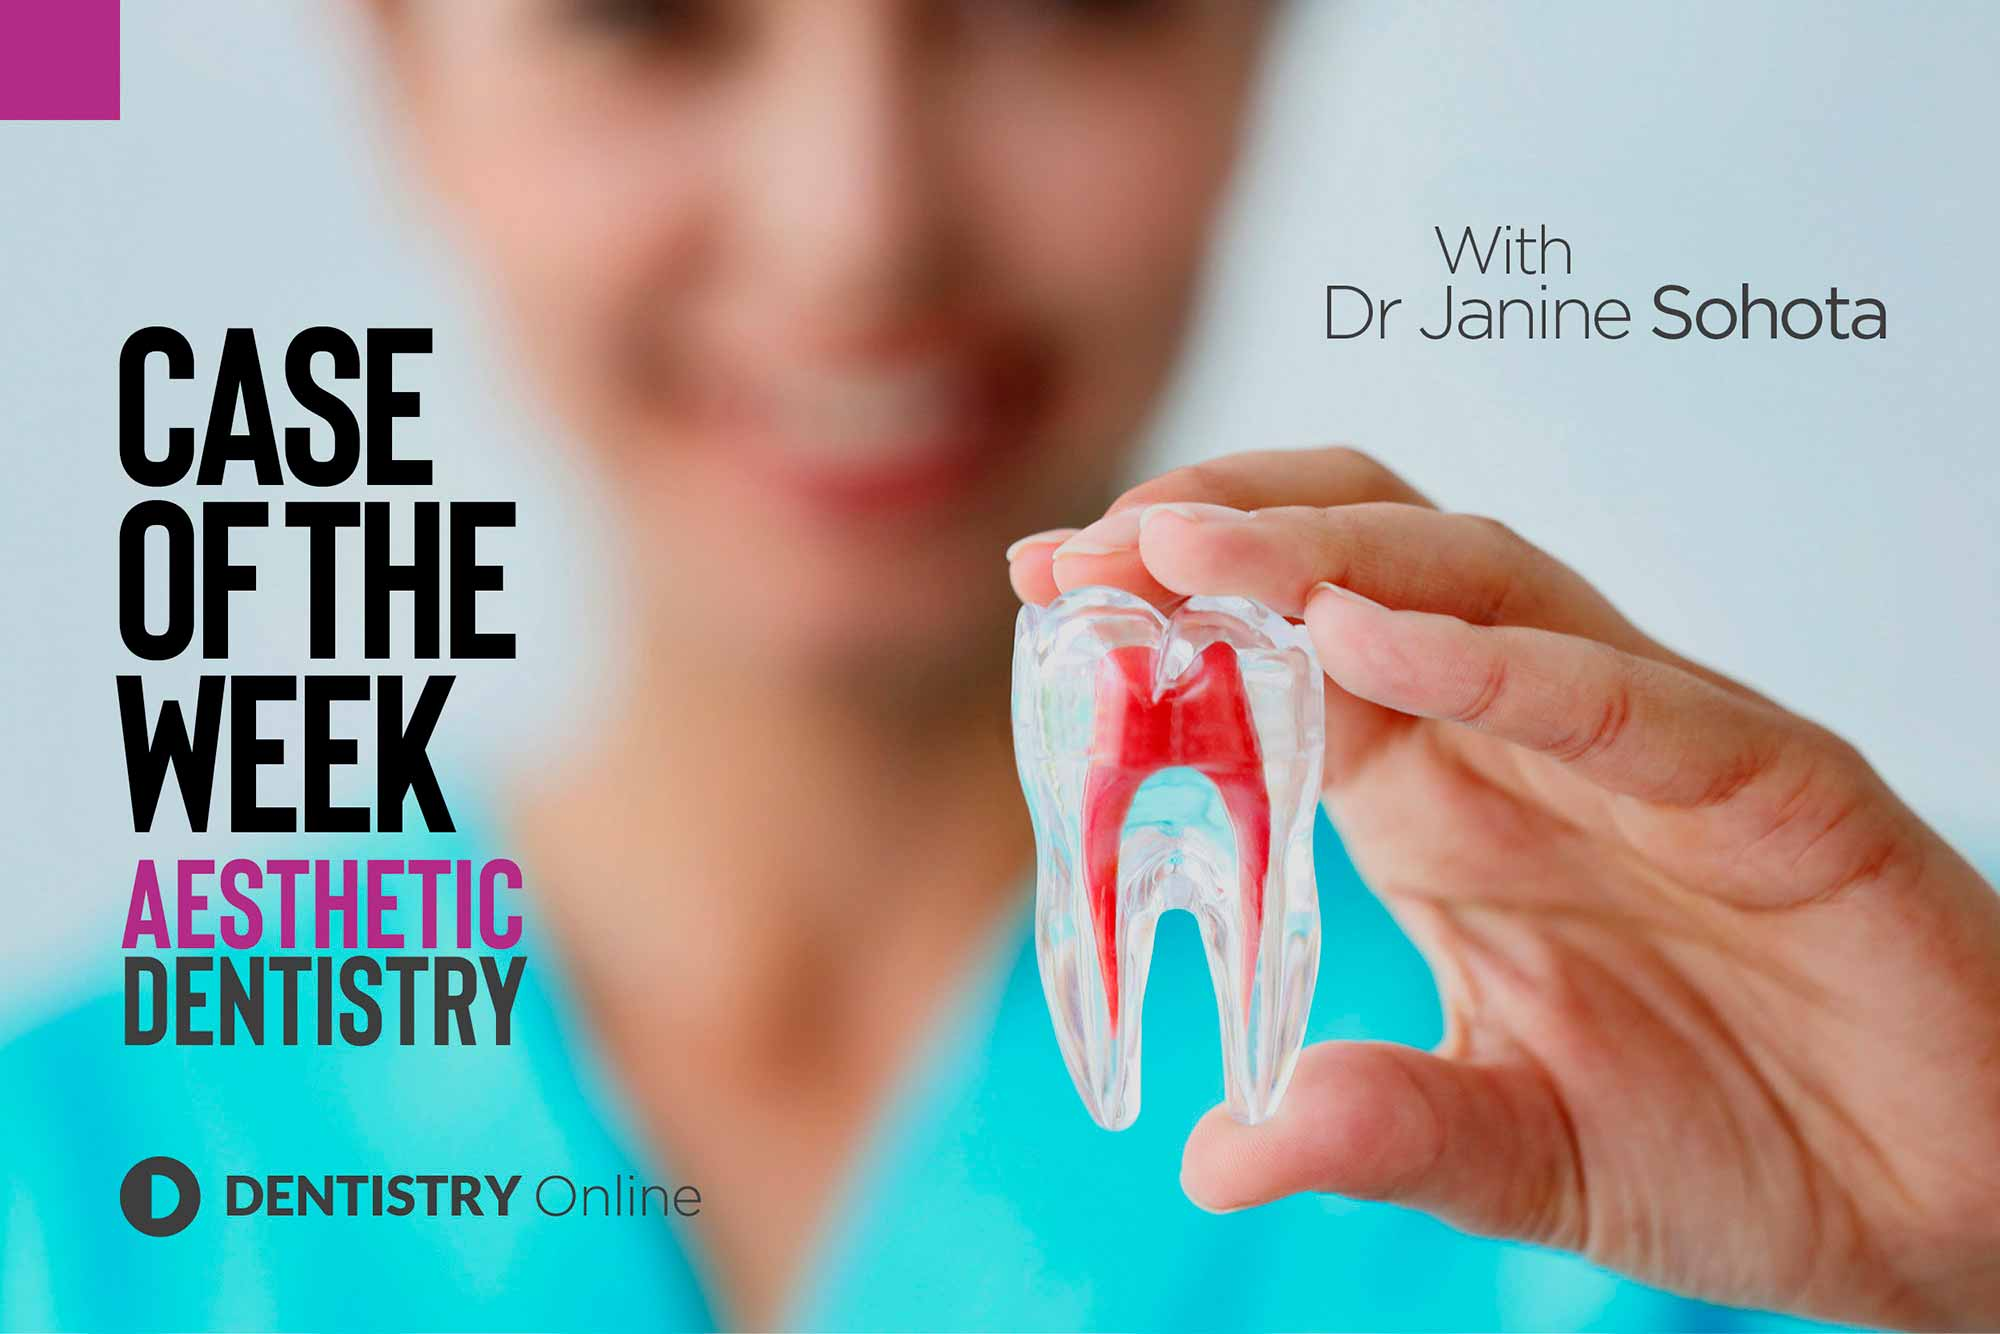 Janine Sohota and her case of the week on central incisors